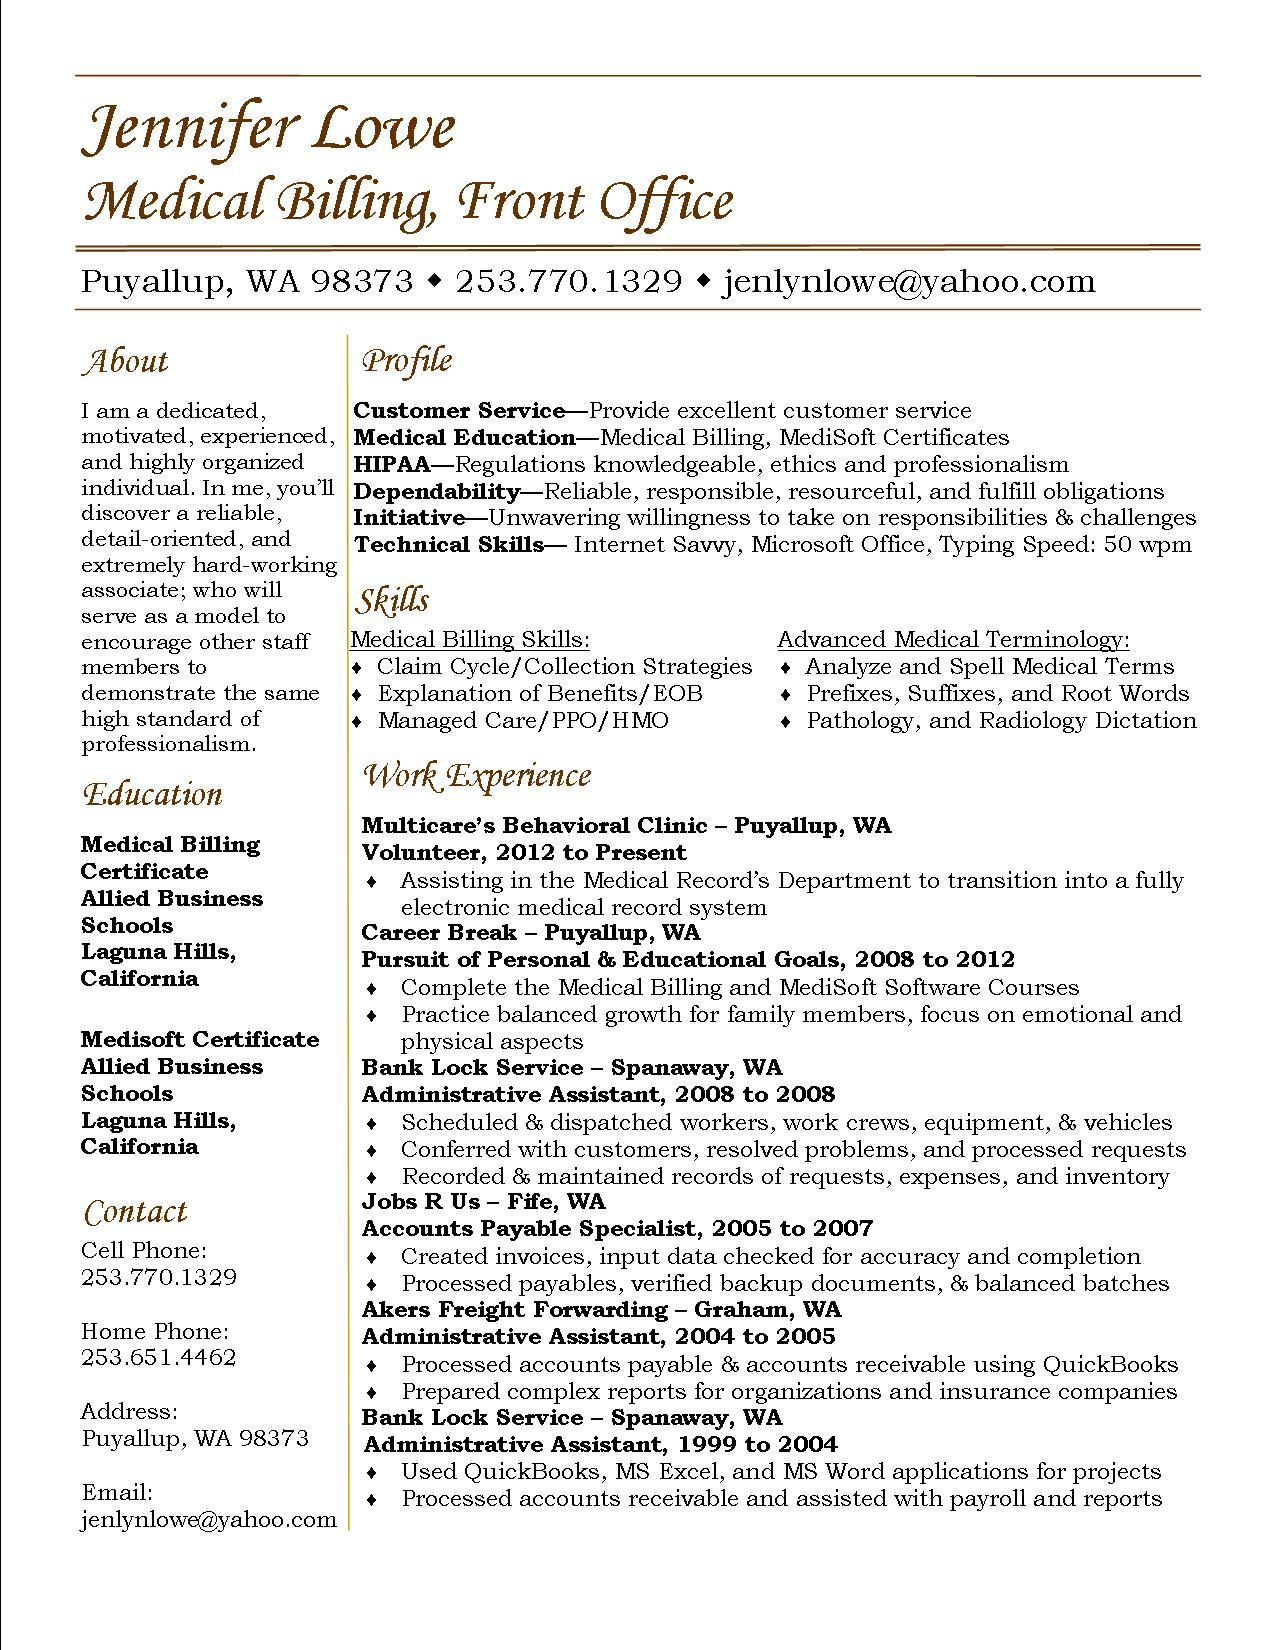 Sample Resume Fascinating Jennifer Lowe Resume  Medical Billing #resume #career  Medical Decorating Design